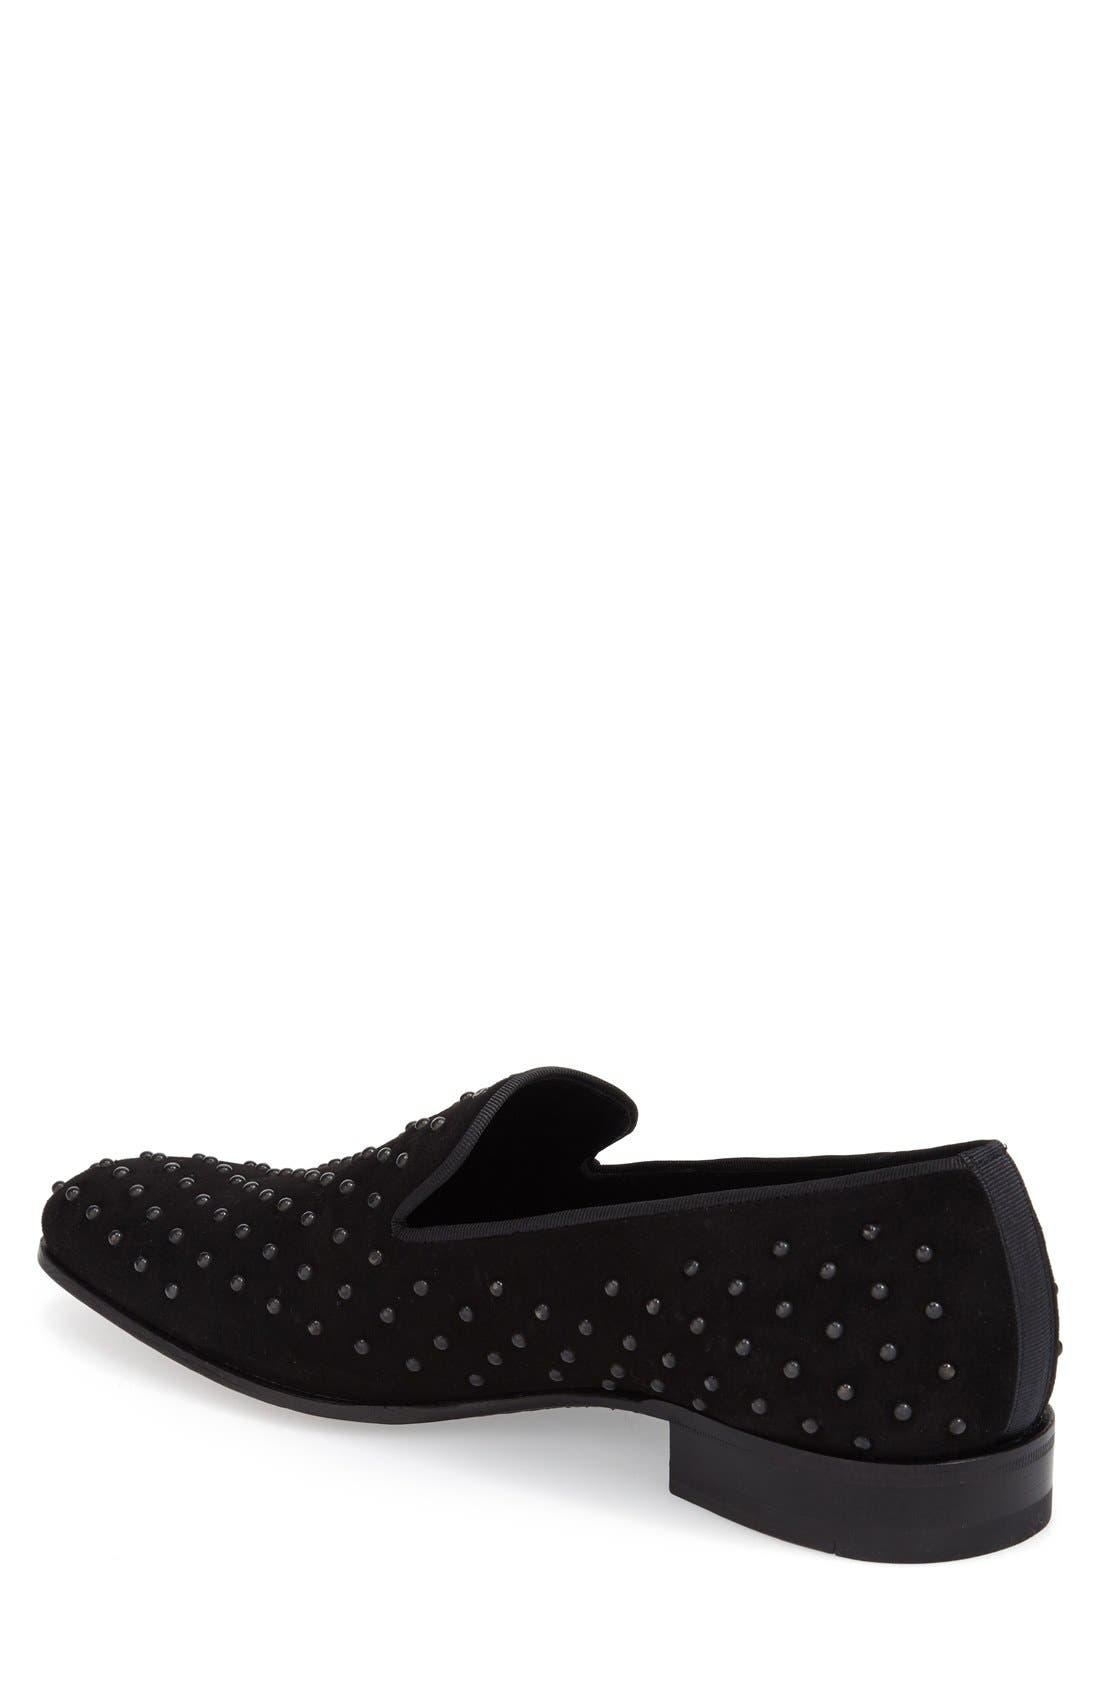 Alternate Image 2  - Mezlan 'Batiste' Studded Venetian Loafer (Men)